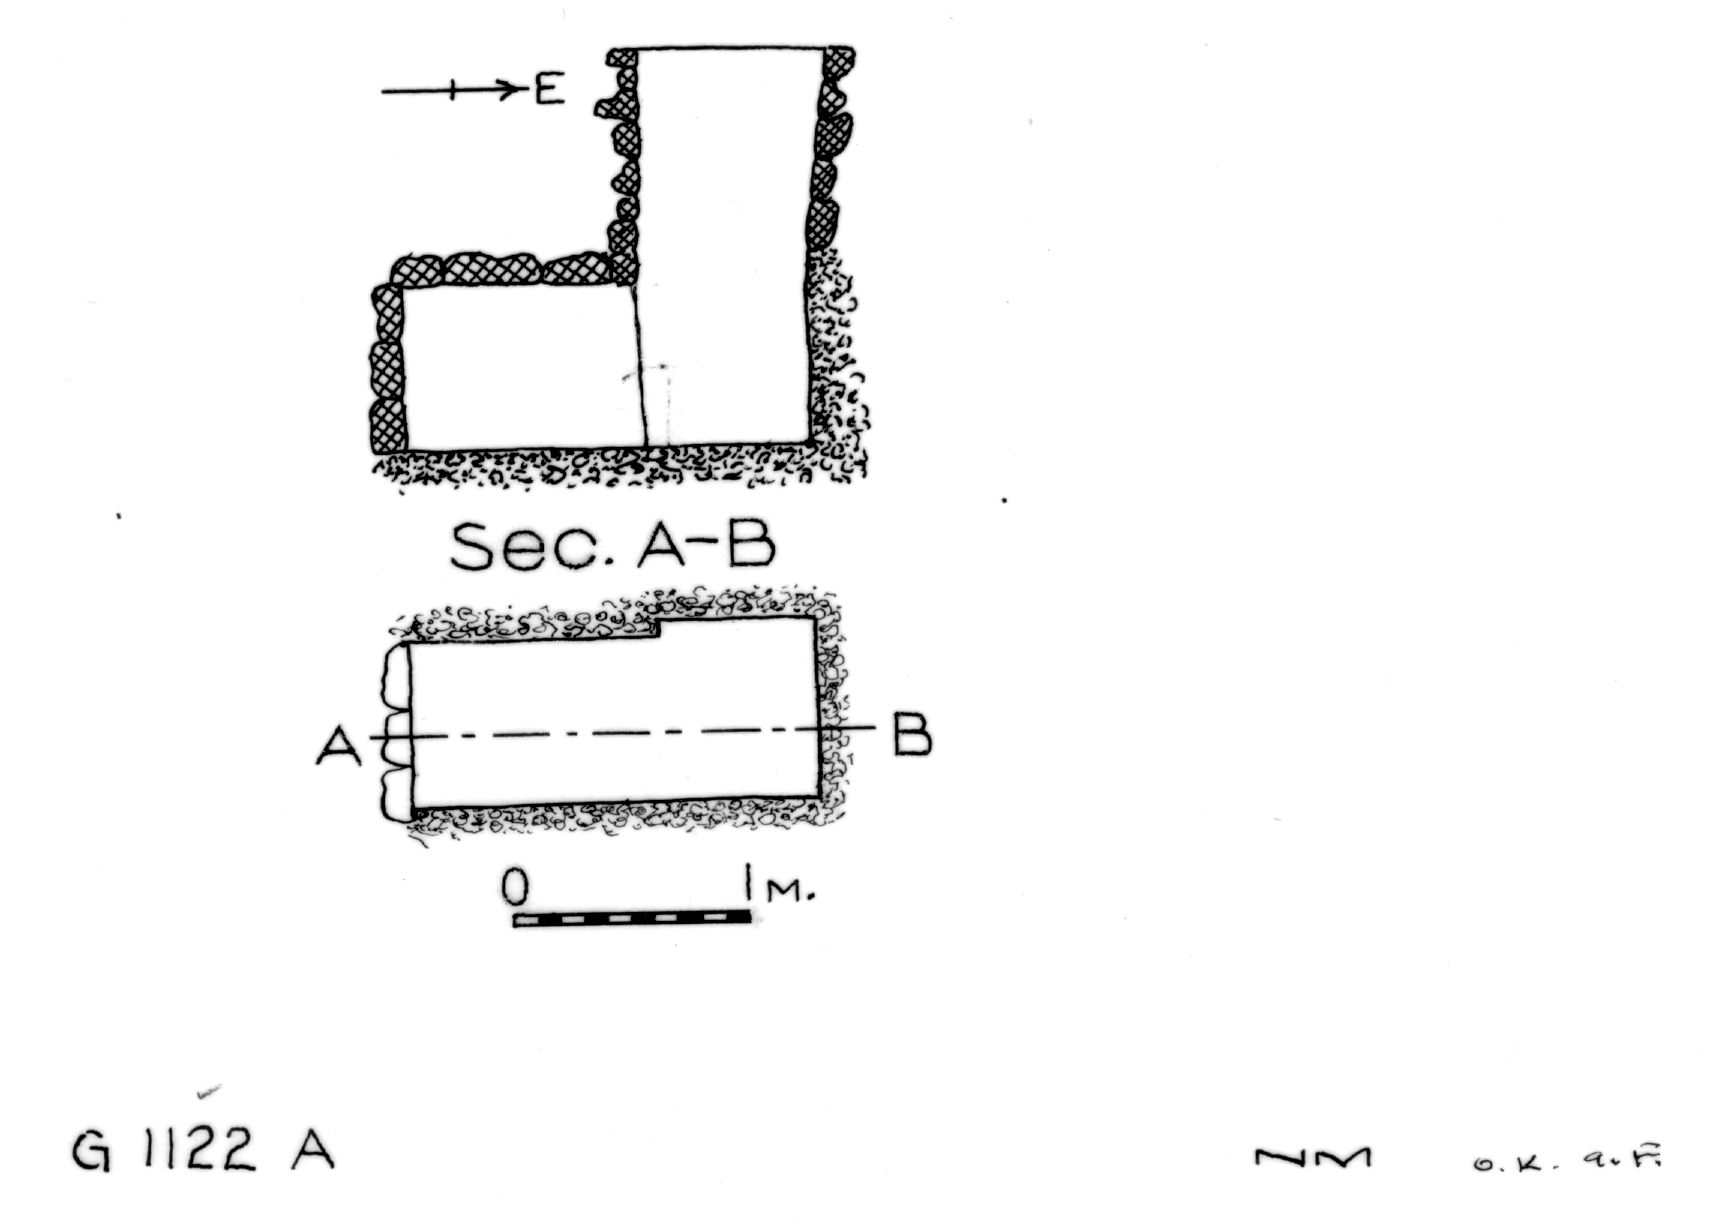 Maps and plans: G 1122, Shaft A